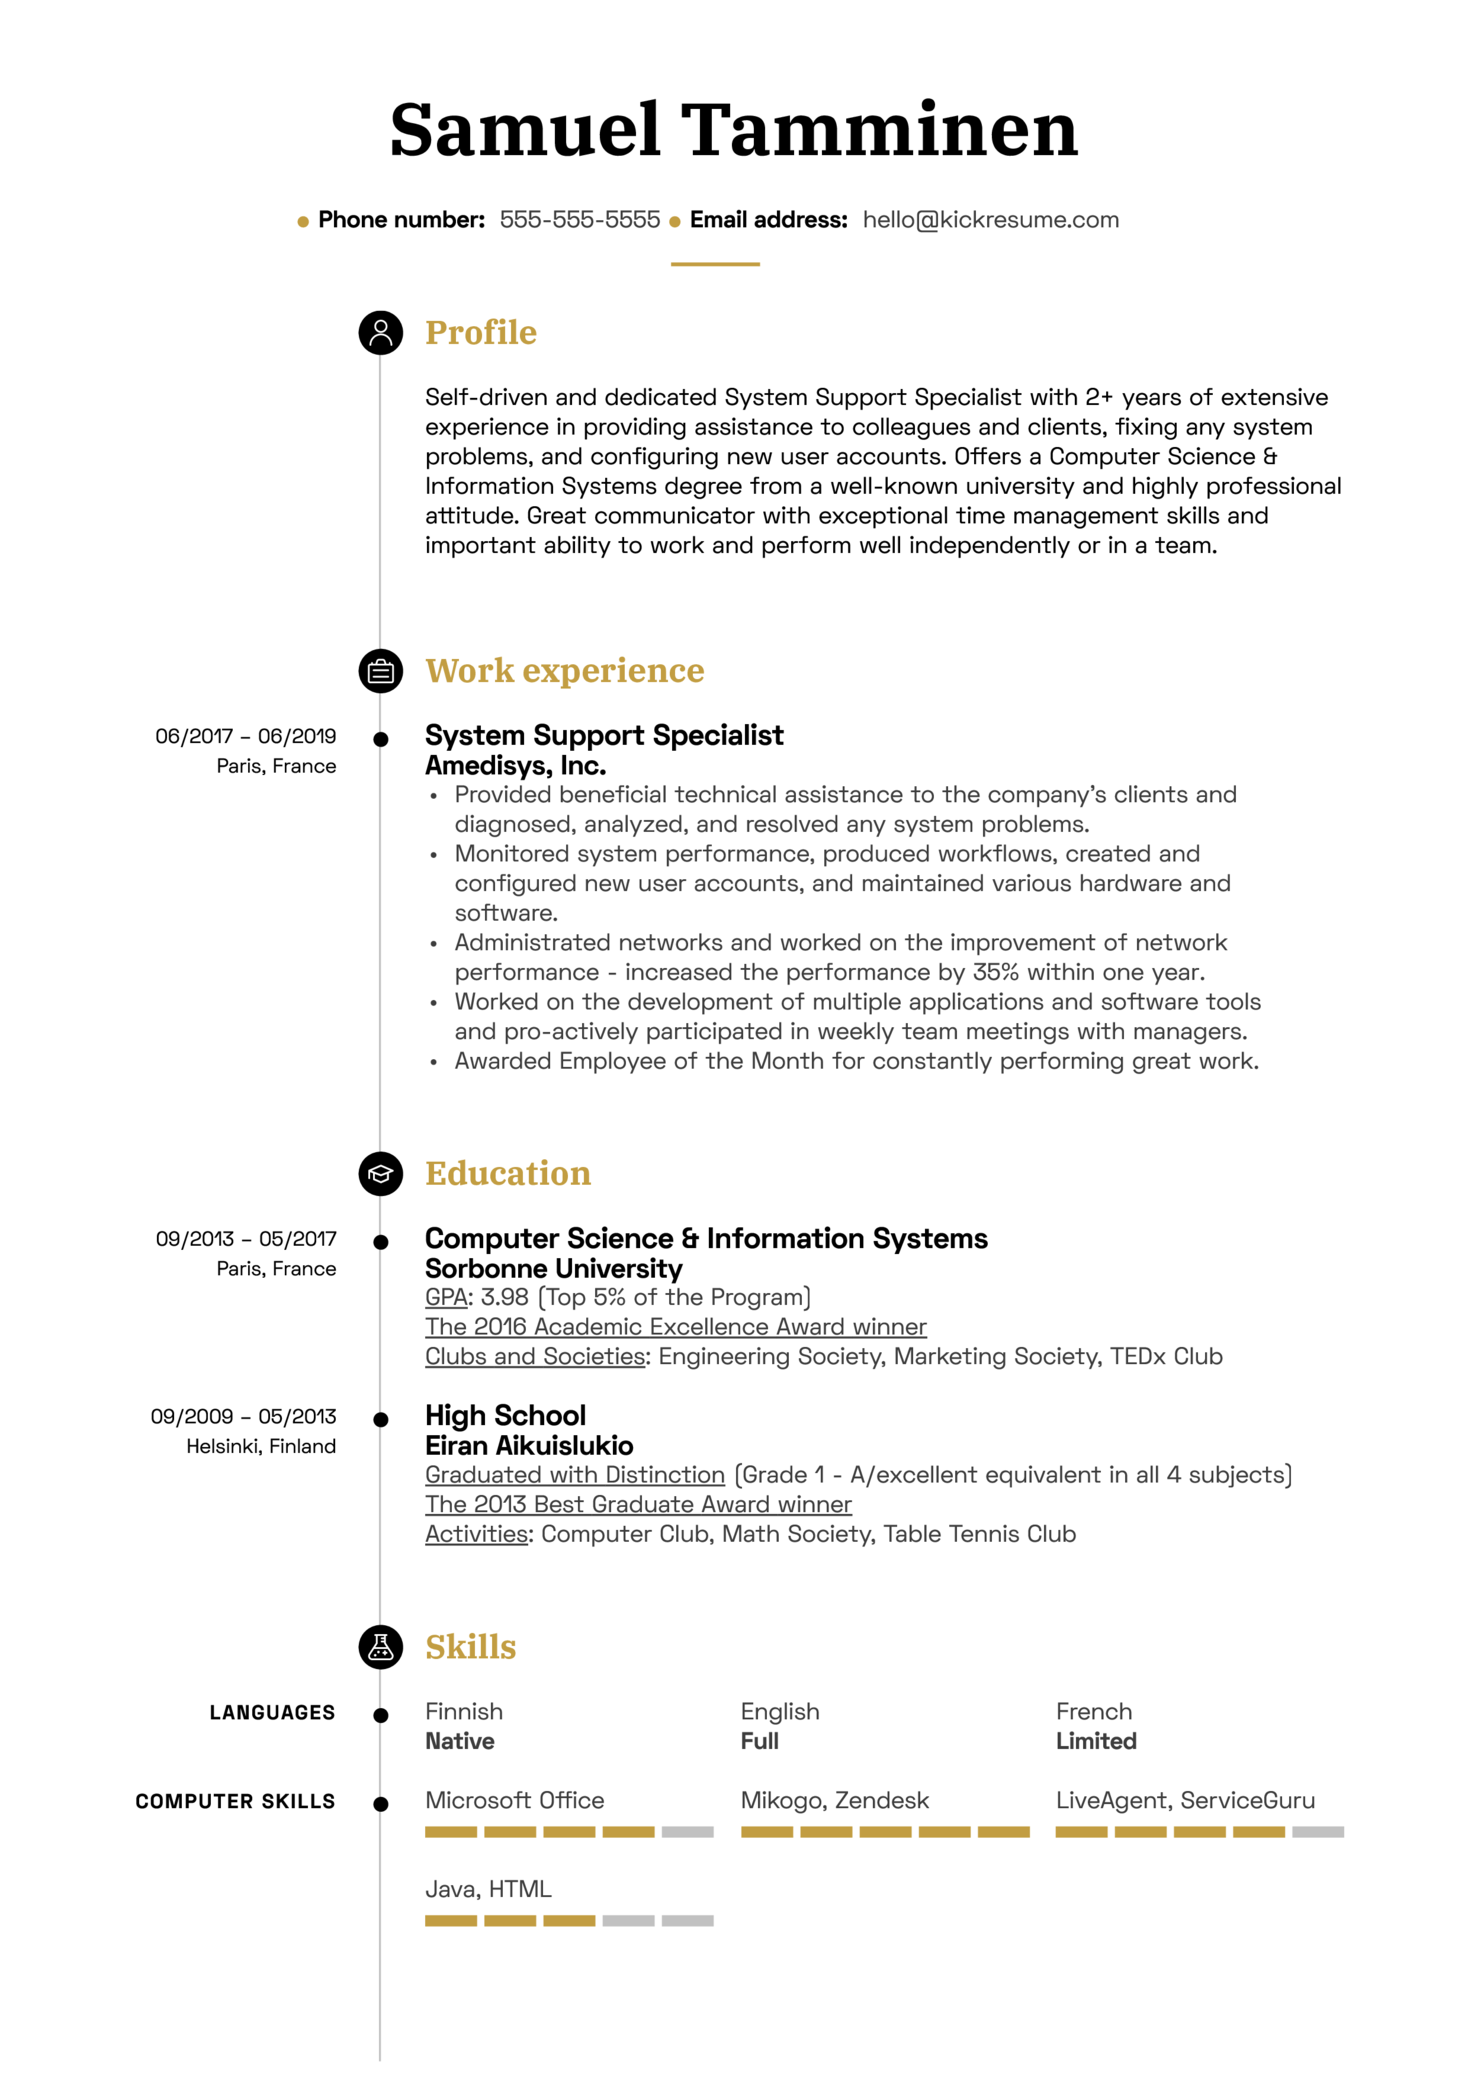 System Support Specialist Resume Example (Parte 1)